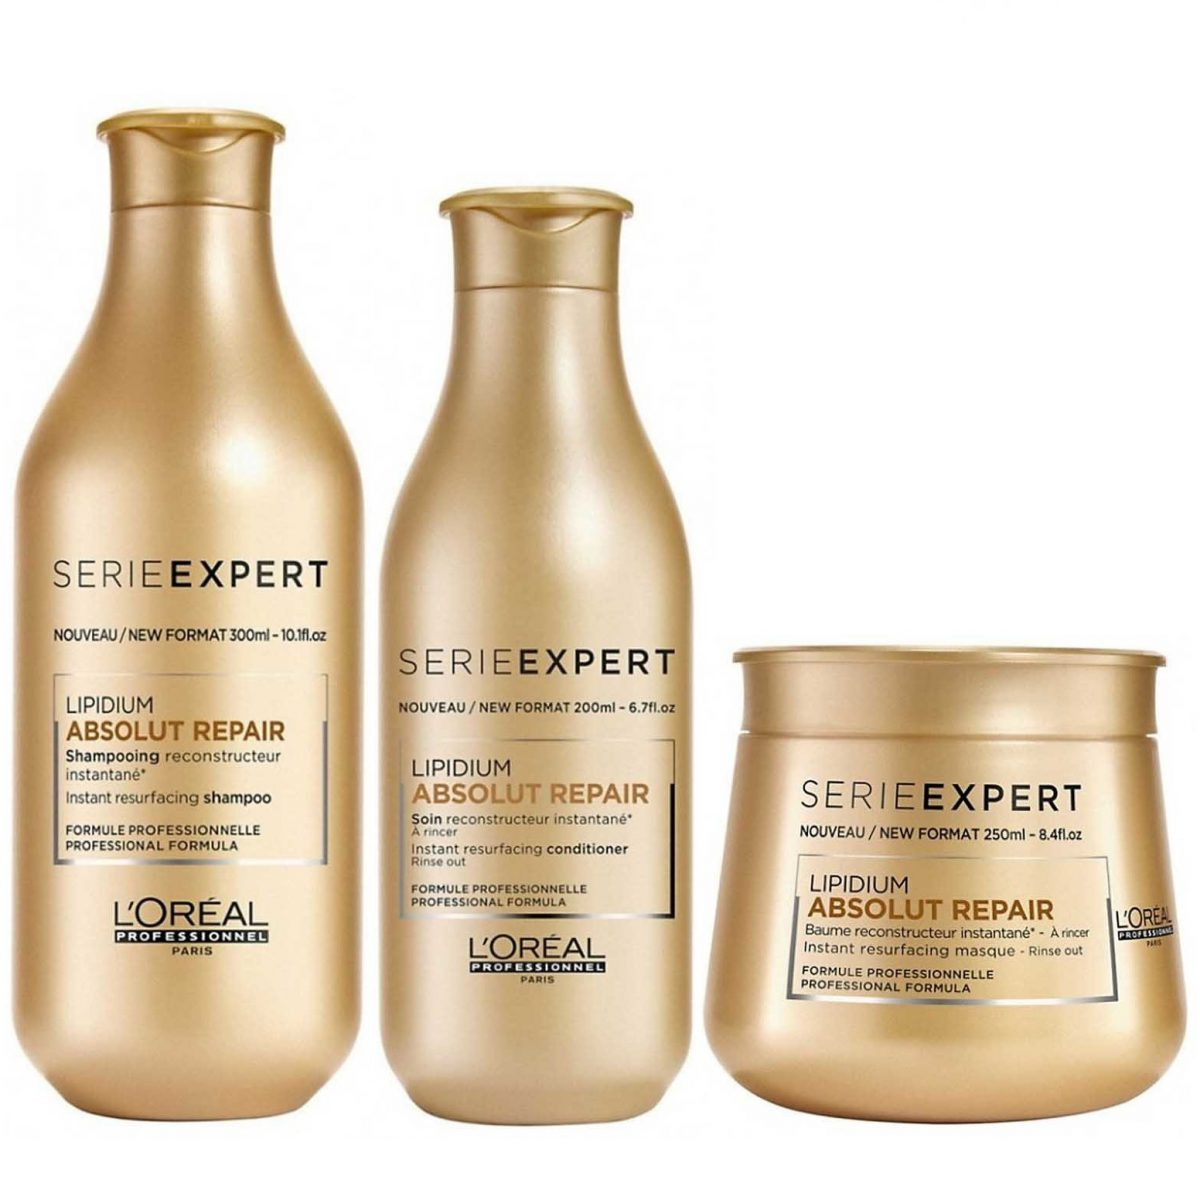 13_Emphase_Absolut_Repair_Lipidium_Shampoo_300ml_Acondicionador_200ml_Mascarilla_250ml_Loreal_Profesional.jpg